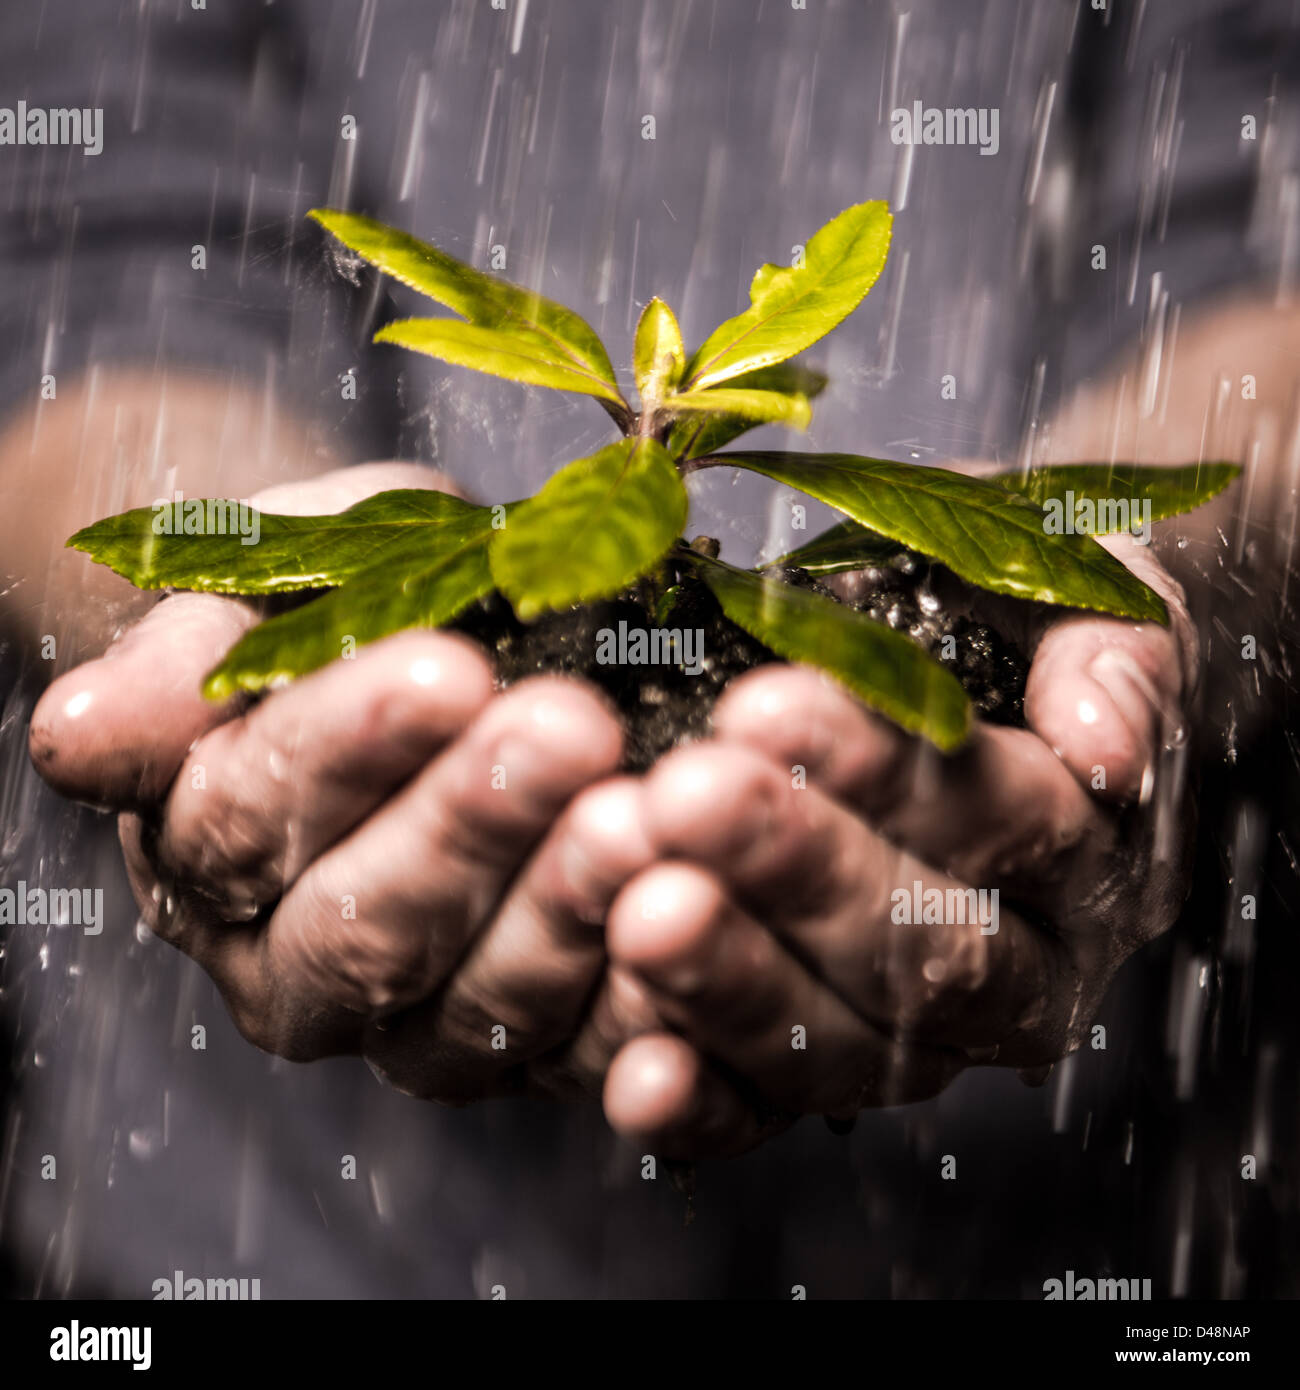 Close up of hands holding seedling in the rain - Stock Image